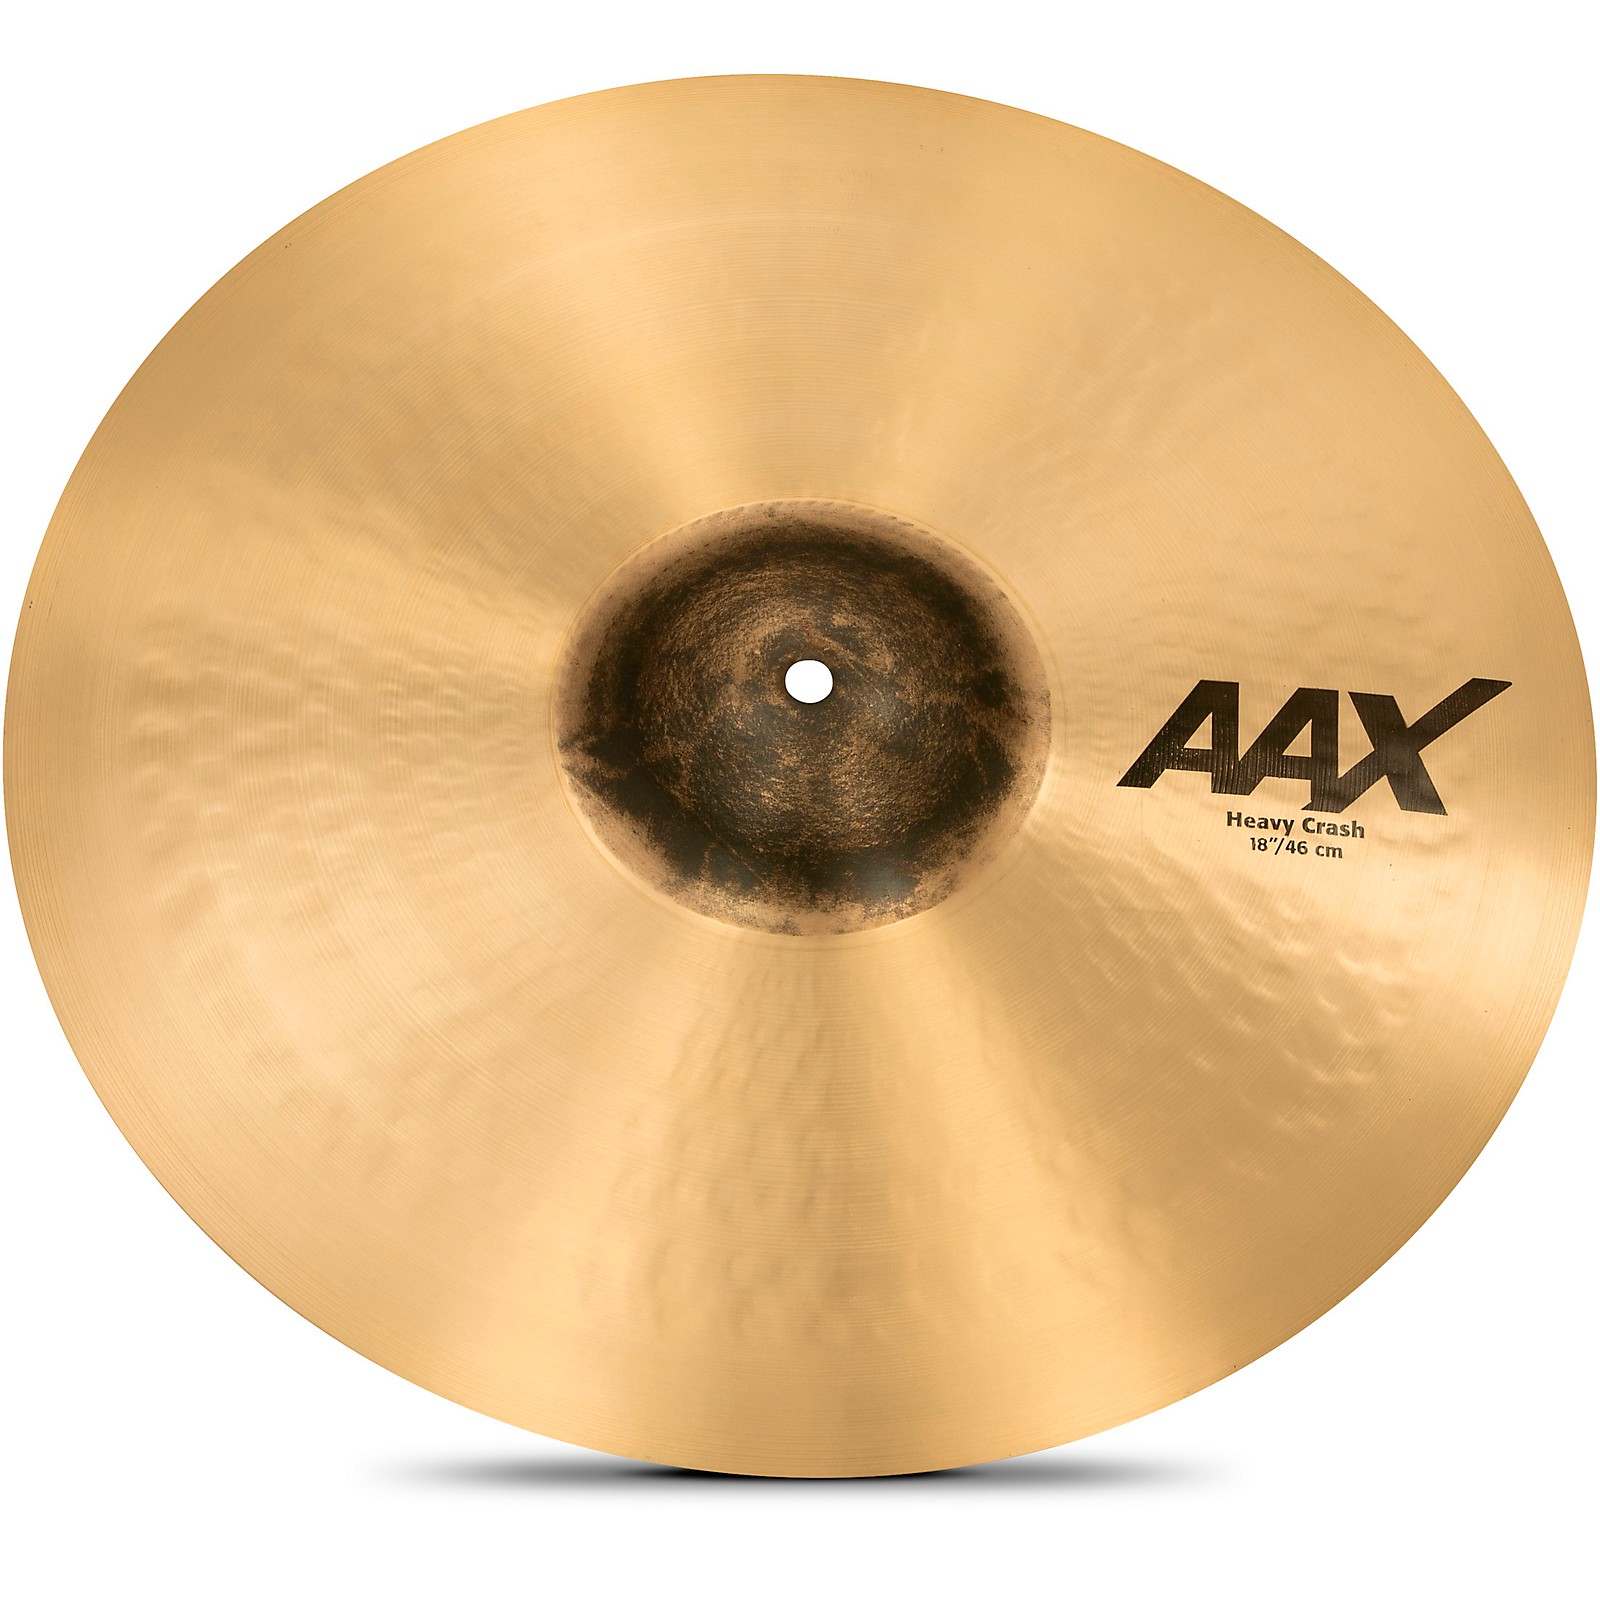 Sabian AAX Heavy Crash Cymbal